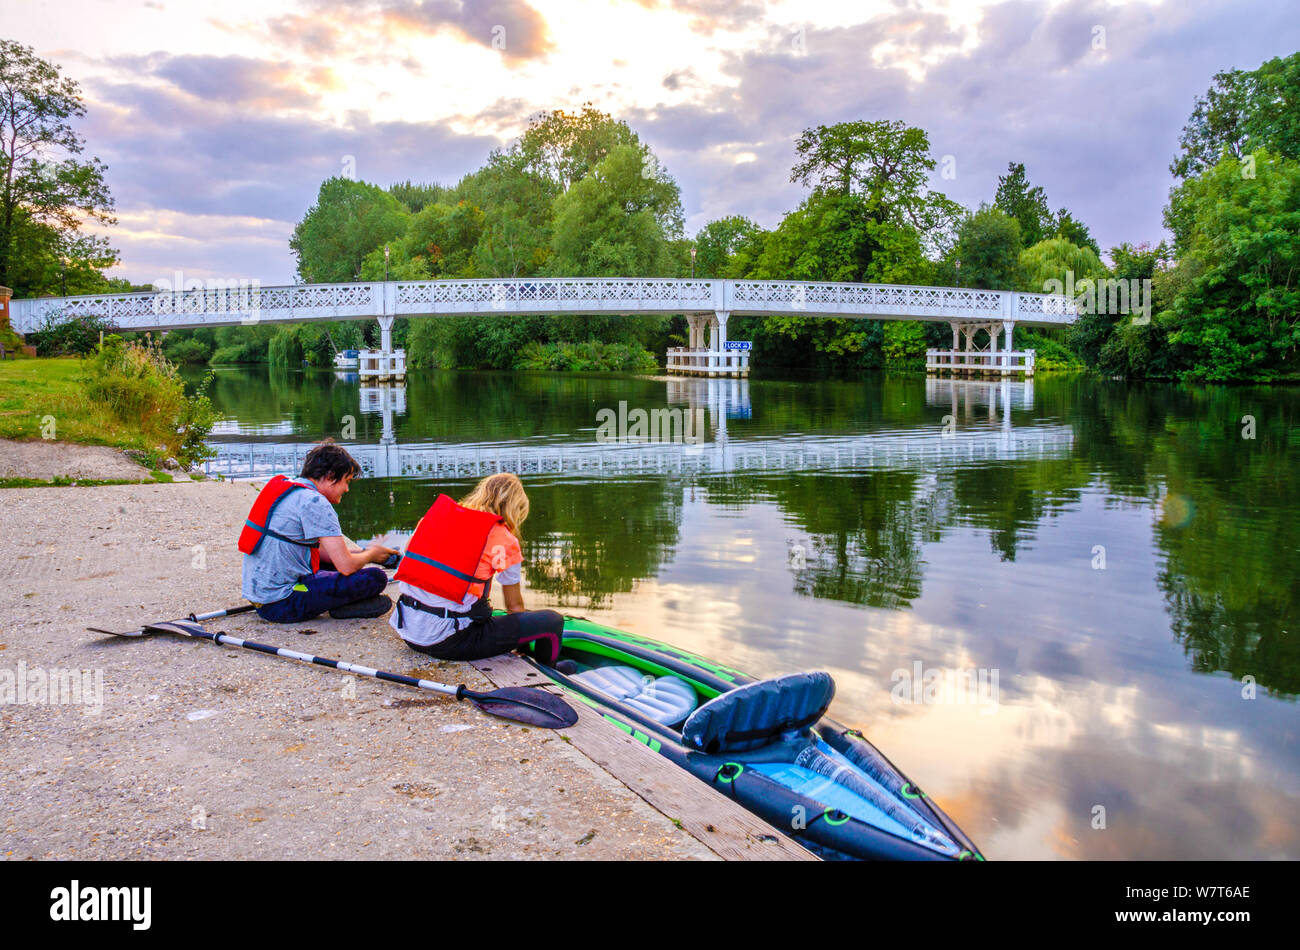 a-couple-of-canoeists-sit-on-the-bank-of-the-river-thames-in-front-of-the-whitchurch-bridge-which-links-the-villages-of-whithcurch-and-pangbourne-W7T6AE.jpg